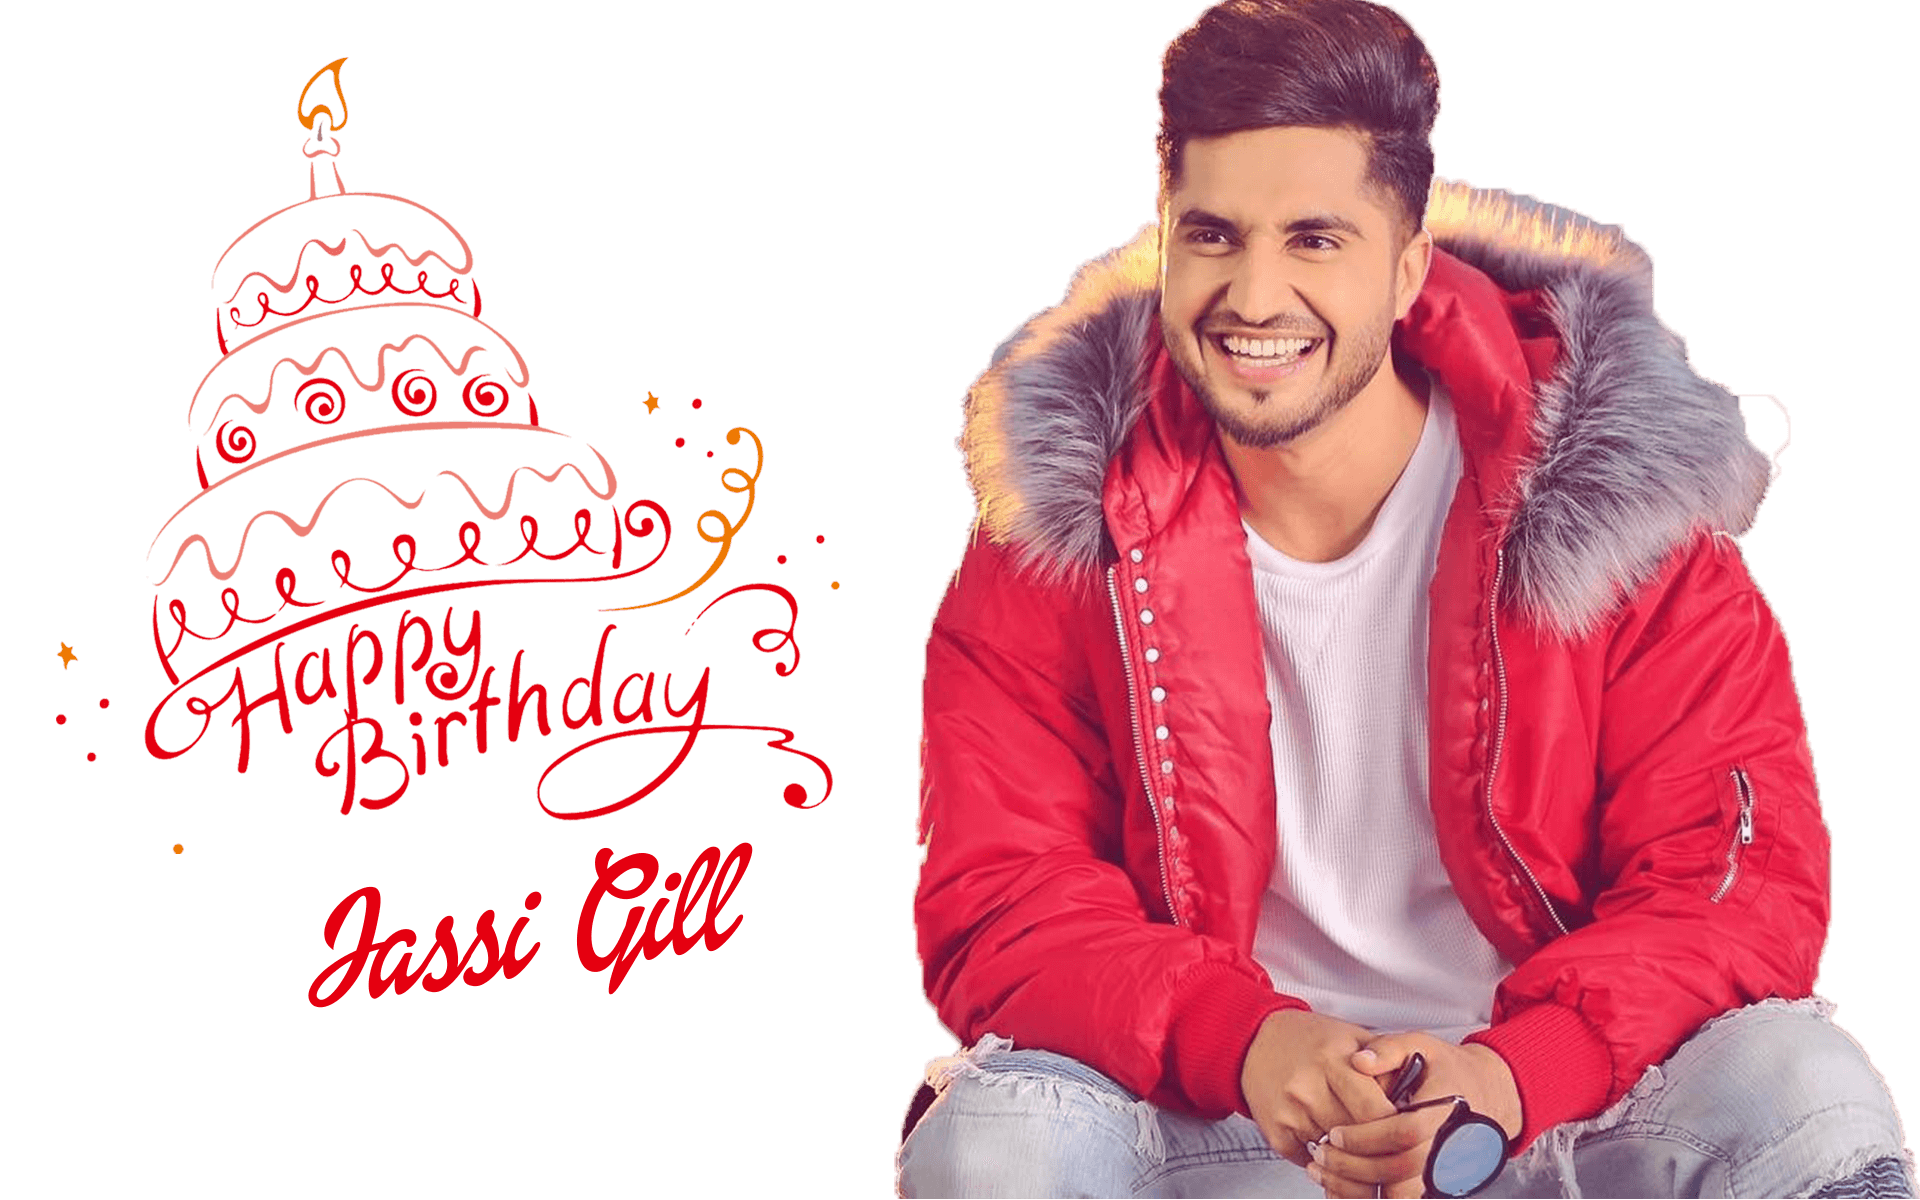 Jassie Gill song, photos(images), hairstyle, wife, age, biography, birthday, height, family, girlfriend, education, net worth, website, wiki, twitter, instagram, imdb, youtube, facebook